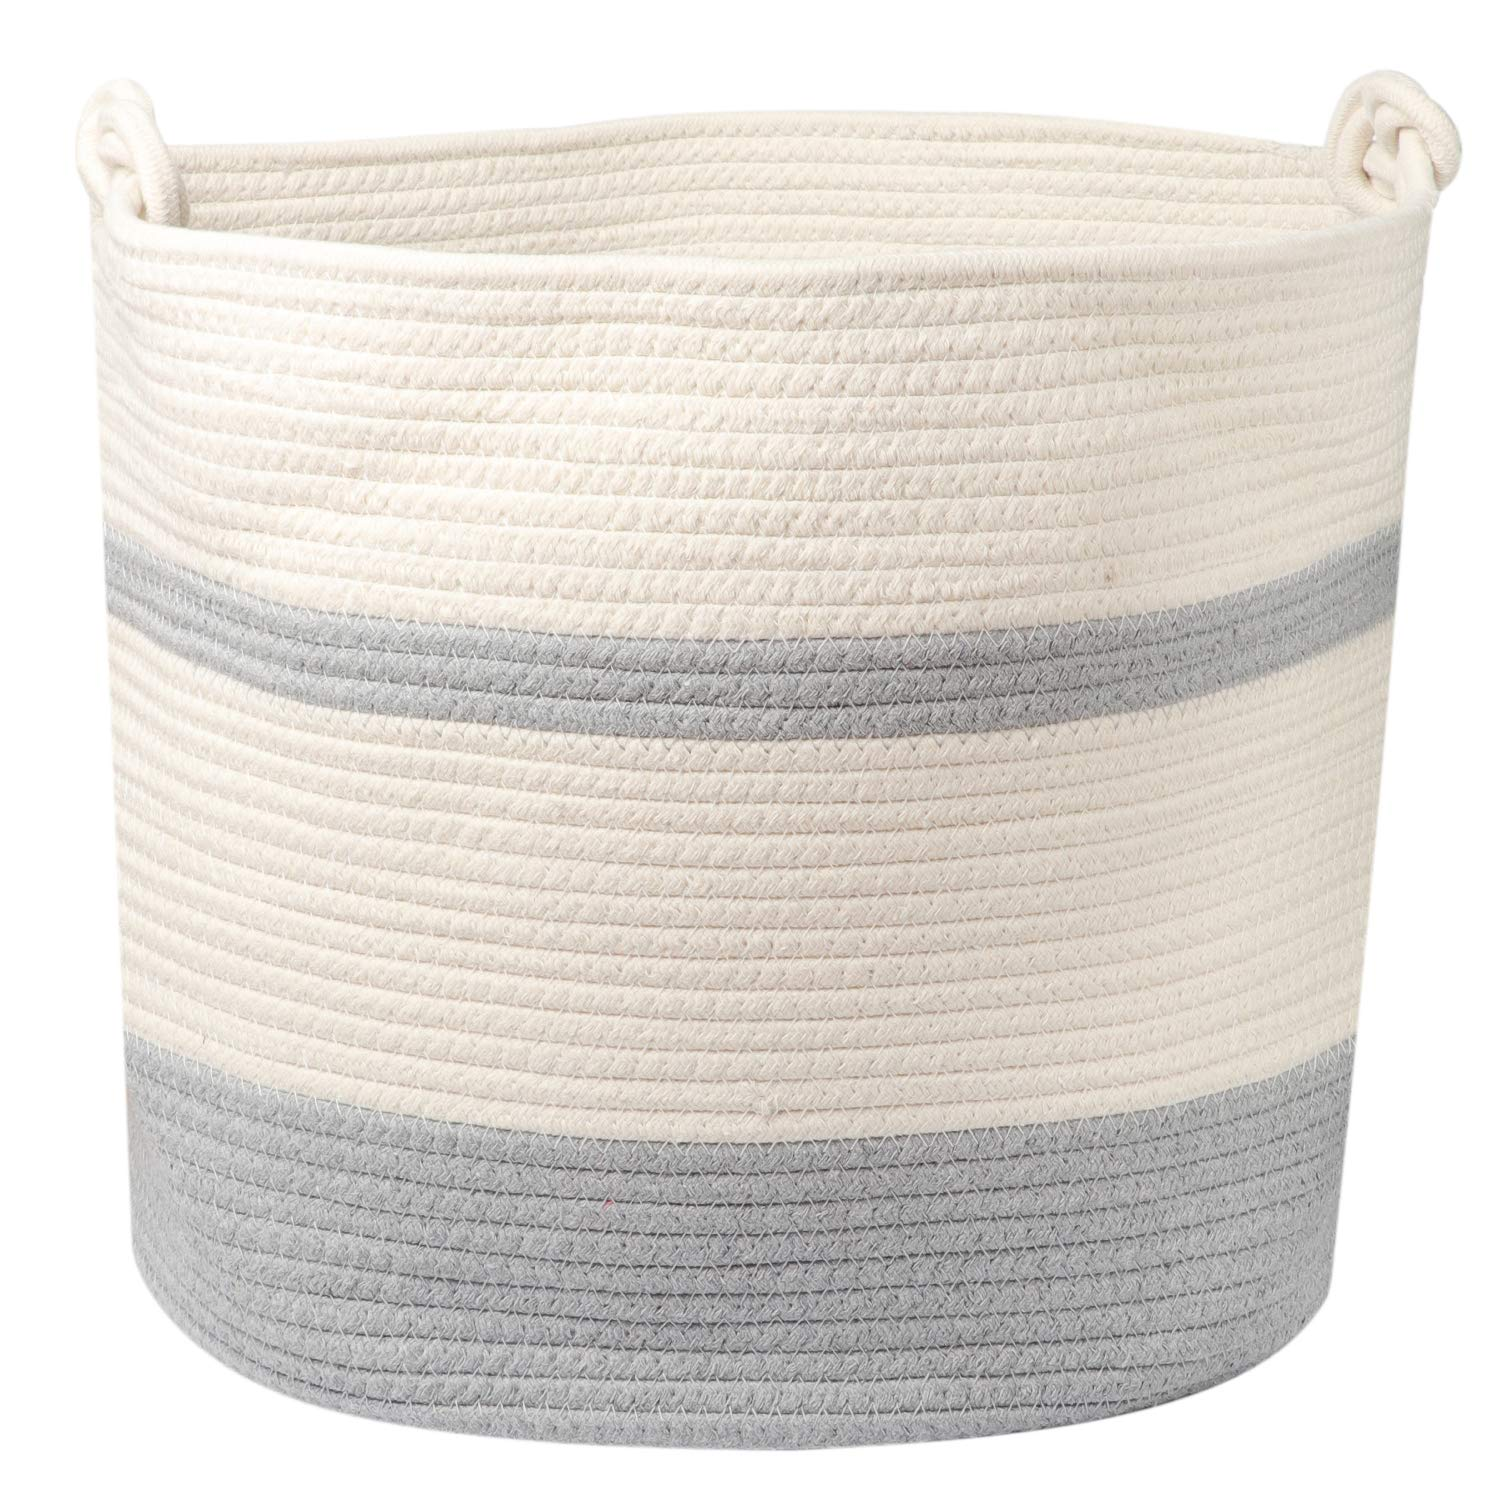 Extra Large Cotton Rope Basket 17'' x 14.5''. Woven Large Cotton Basket for Storage - Blankets, Toys, Laundry, etc. with Comfortable Handle and Strong Stitching to Ensure Highest Quality. by Shaah